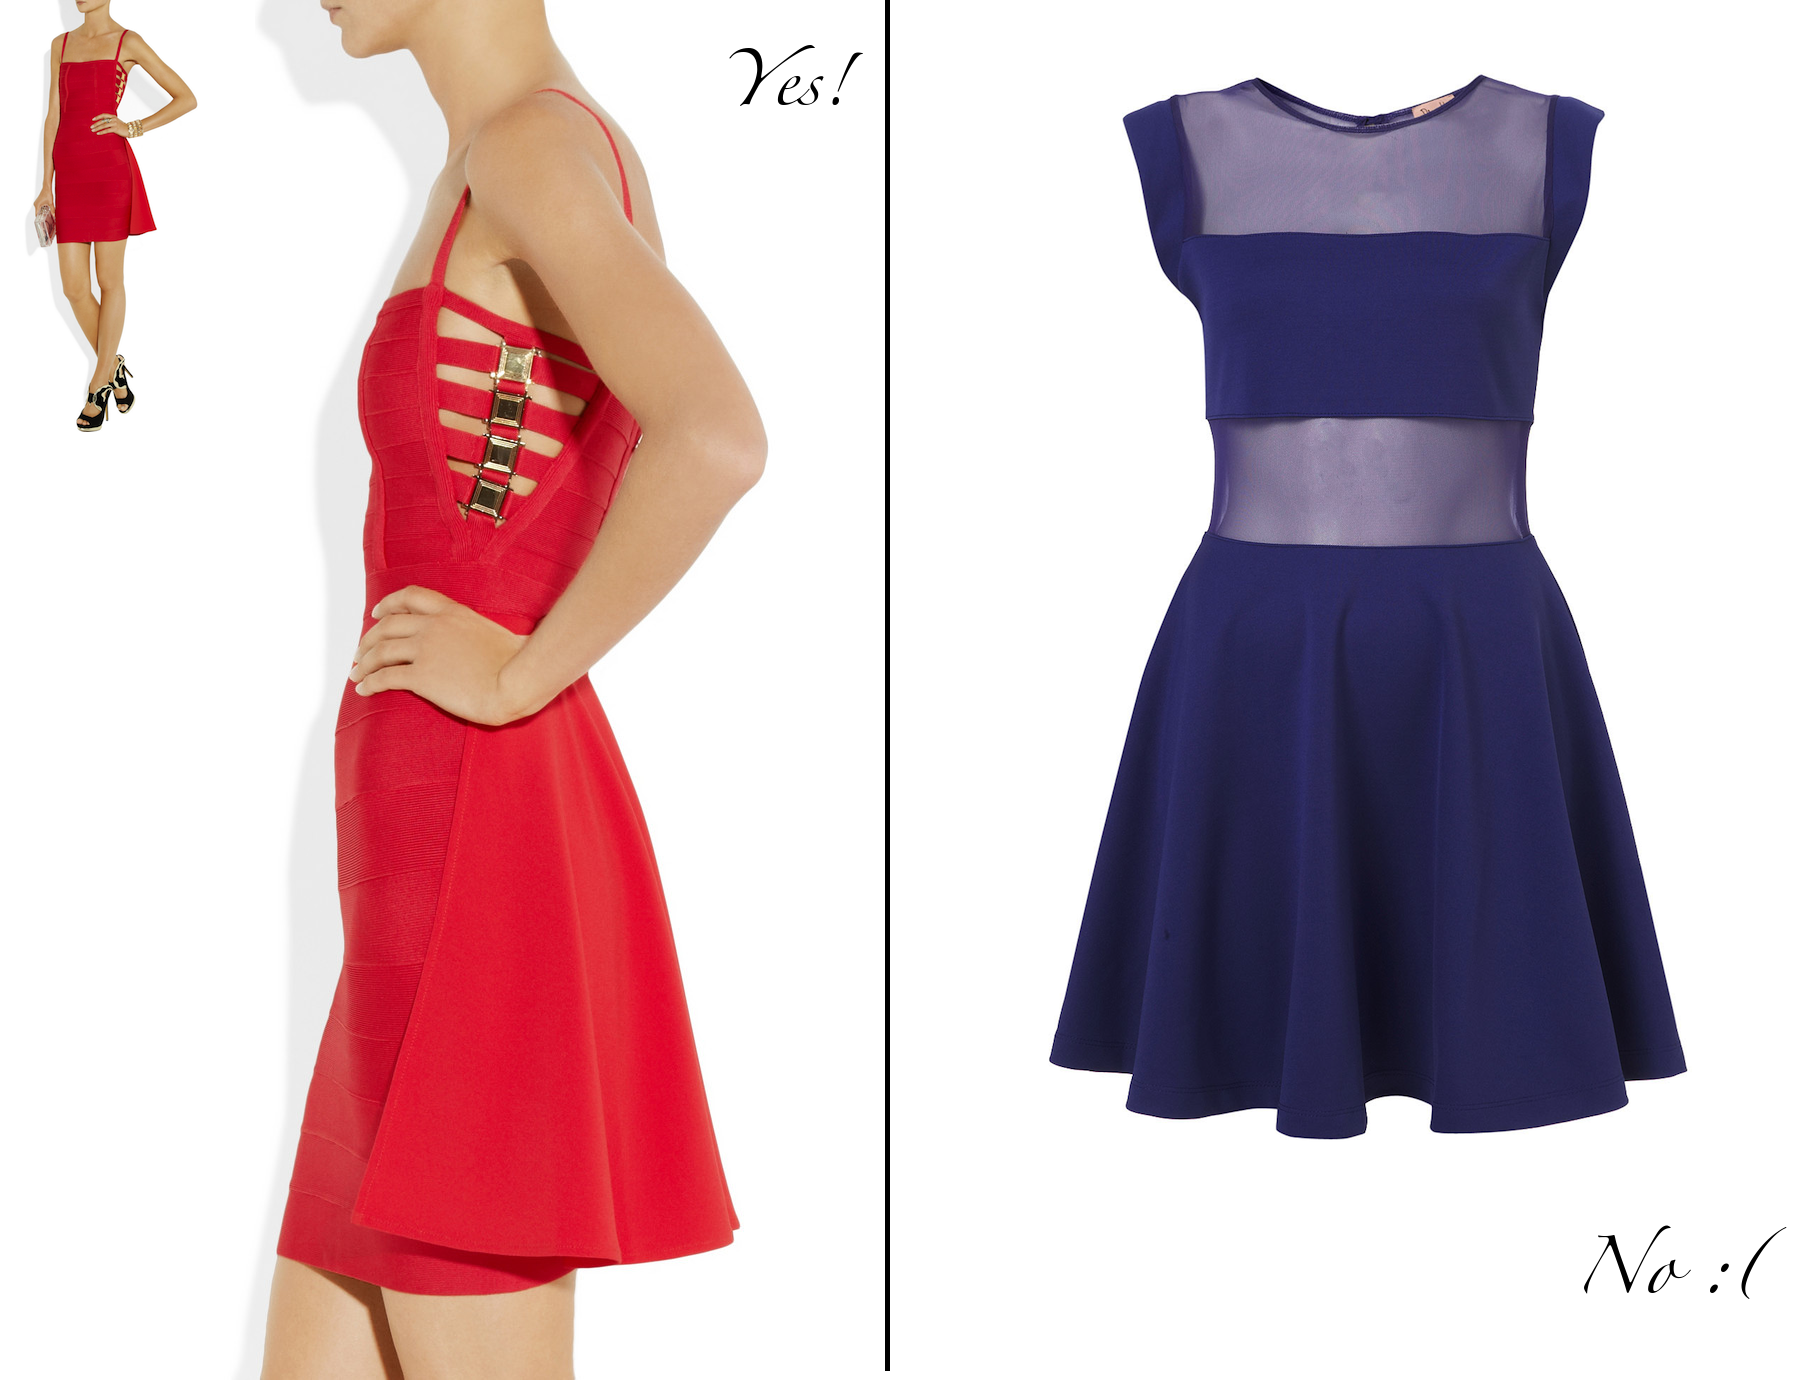 what-not-to-wear-for-wedding-guests-cutout-dresses.original.png ...